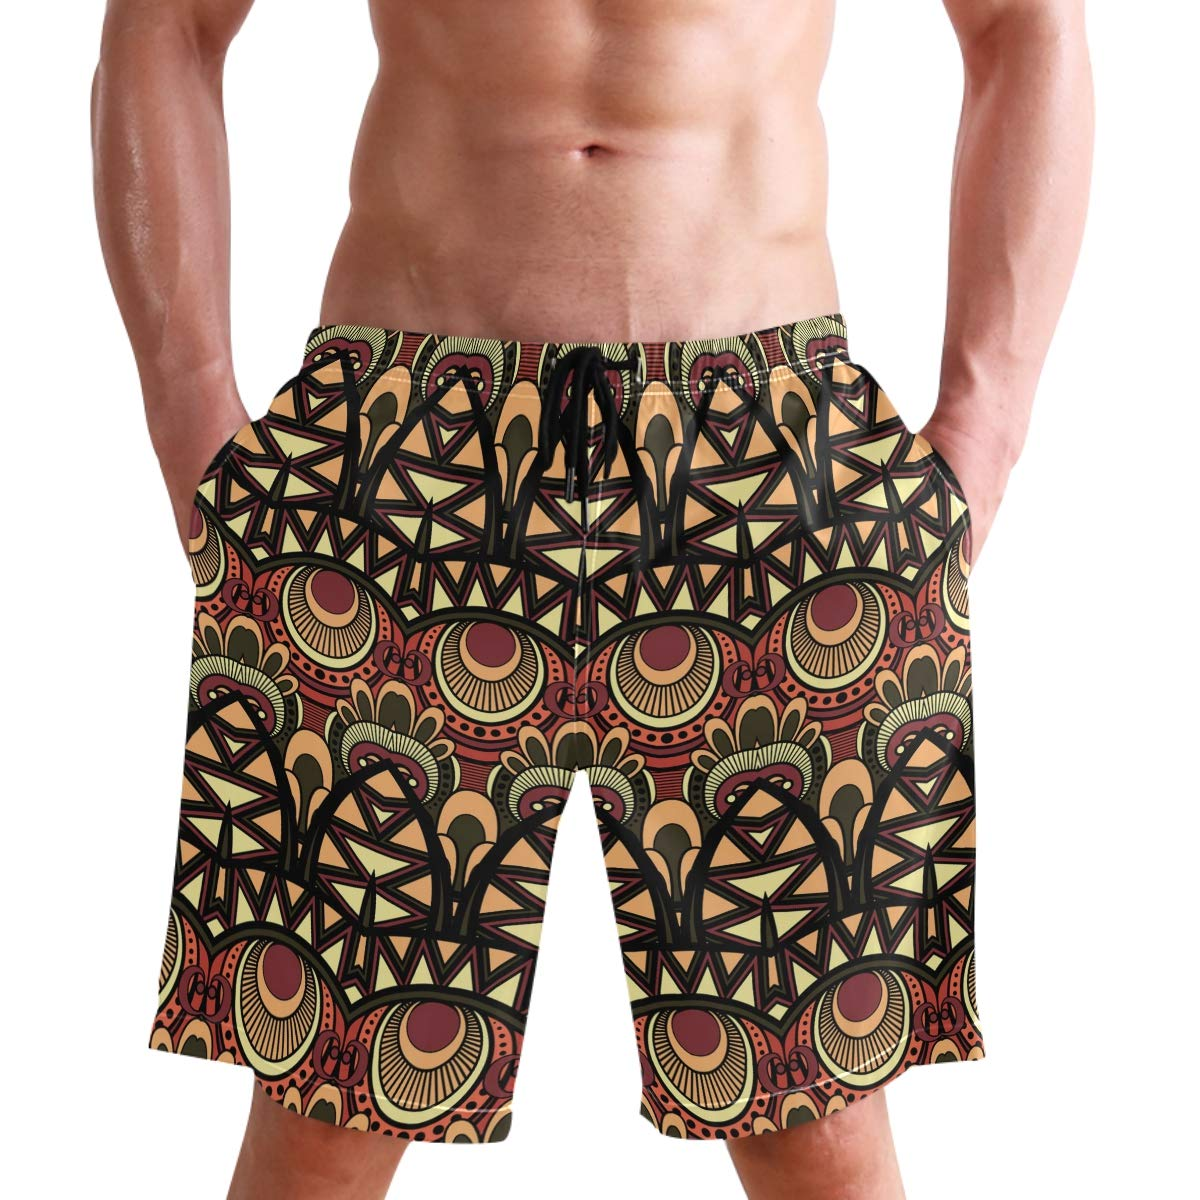 WIHVE Mens Swim Trunks Abstract Tribal Ethnic Pattern Beach Board Shorts with Lining